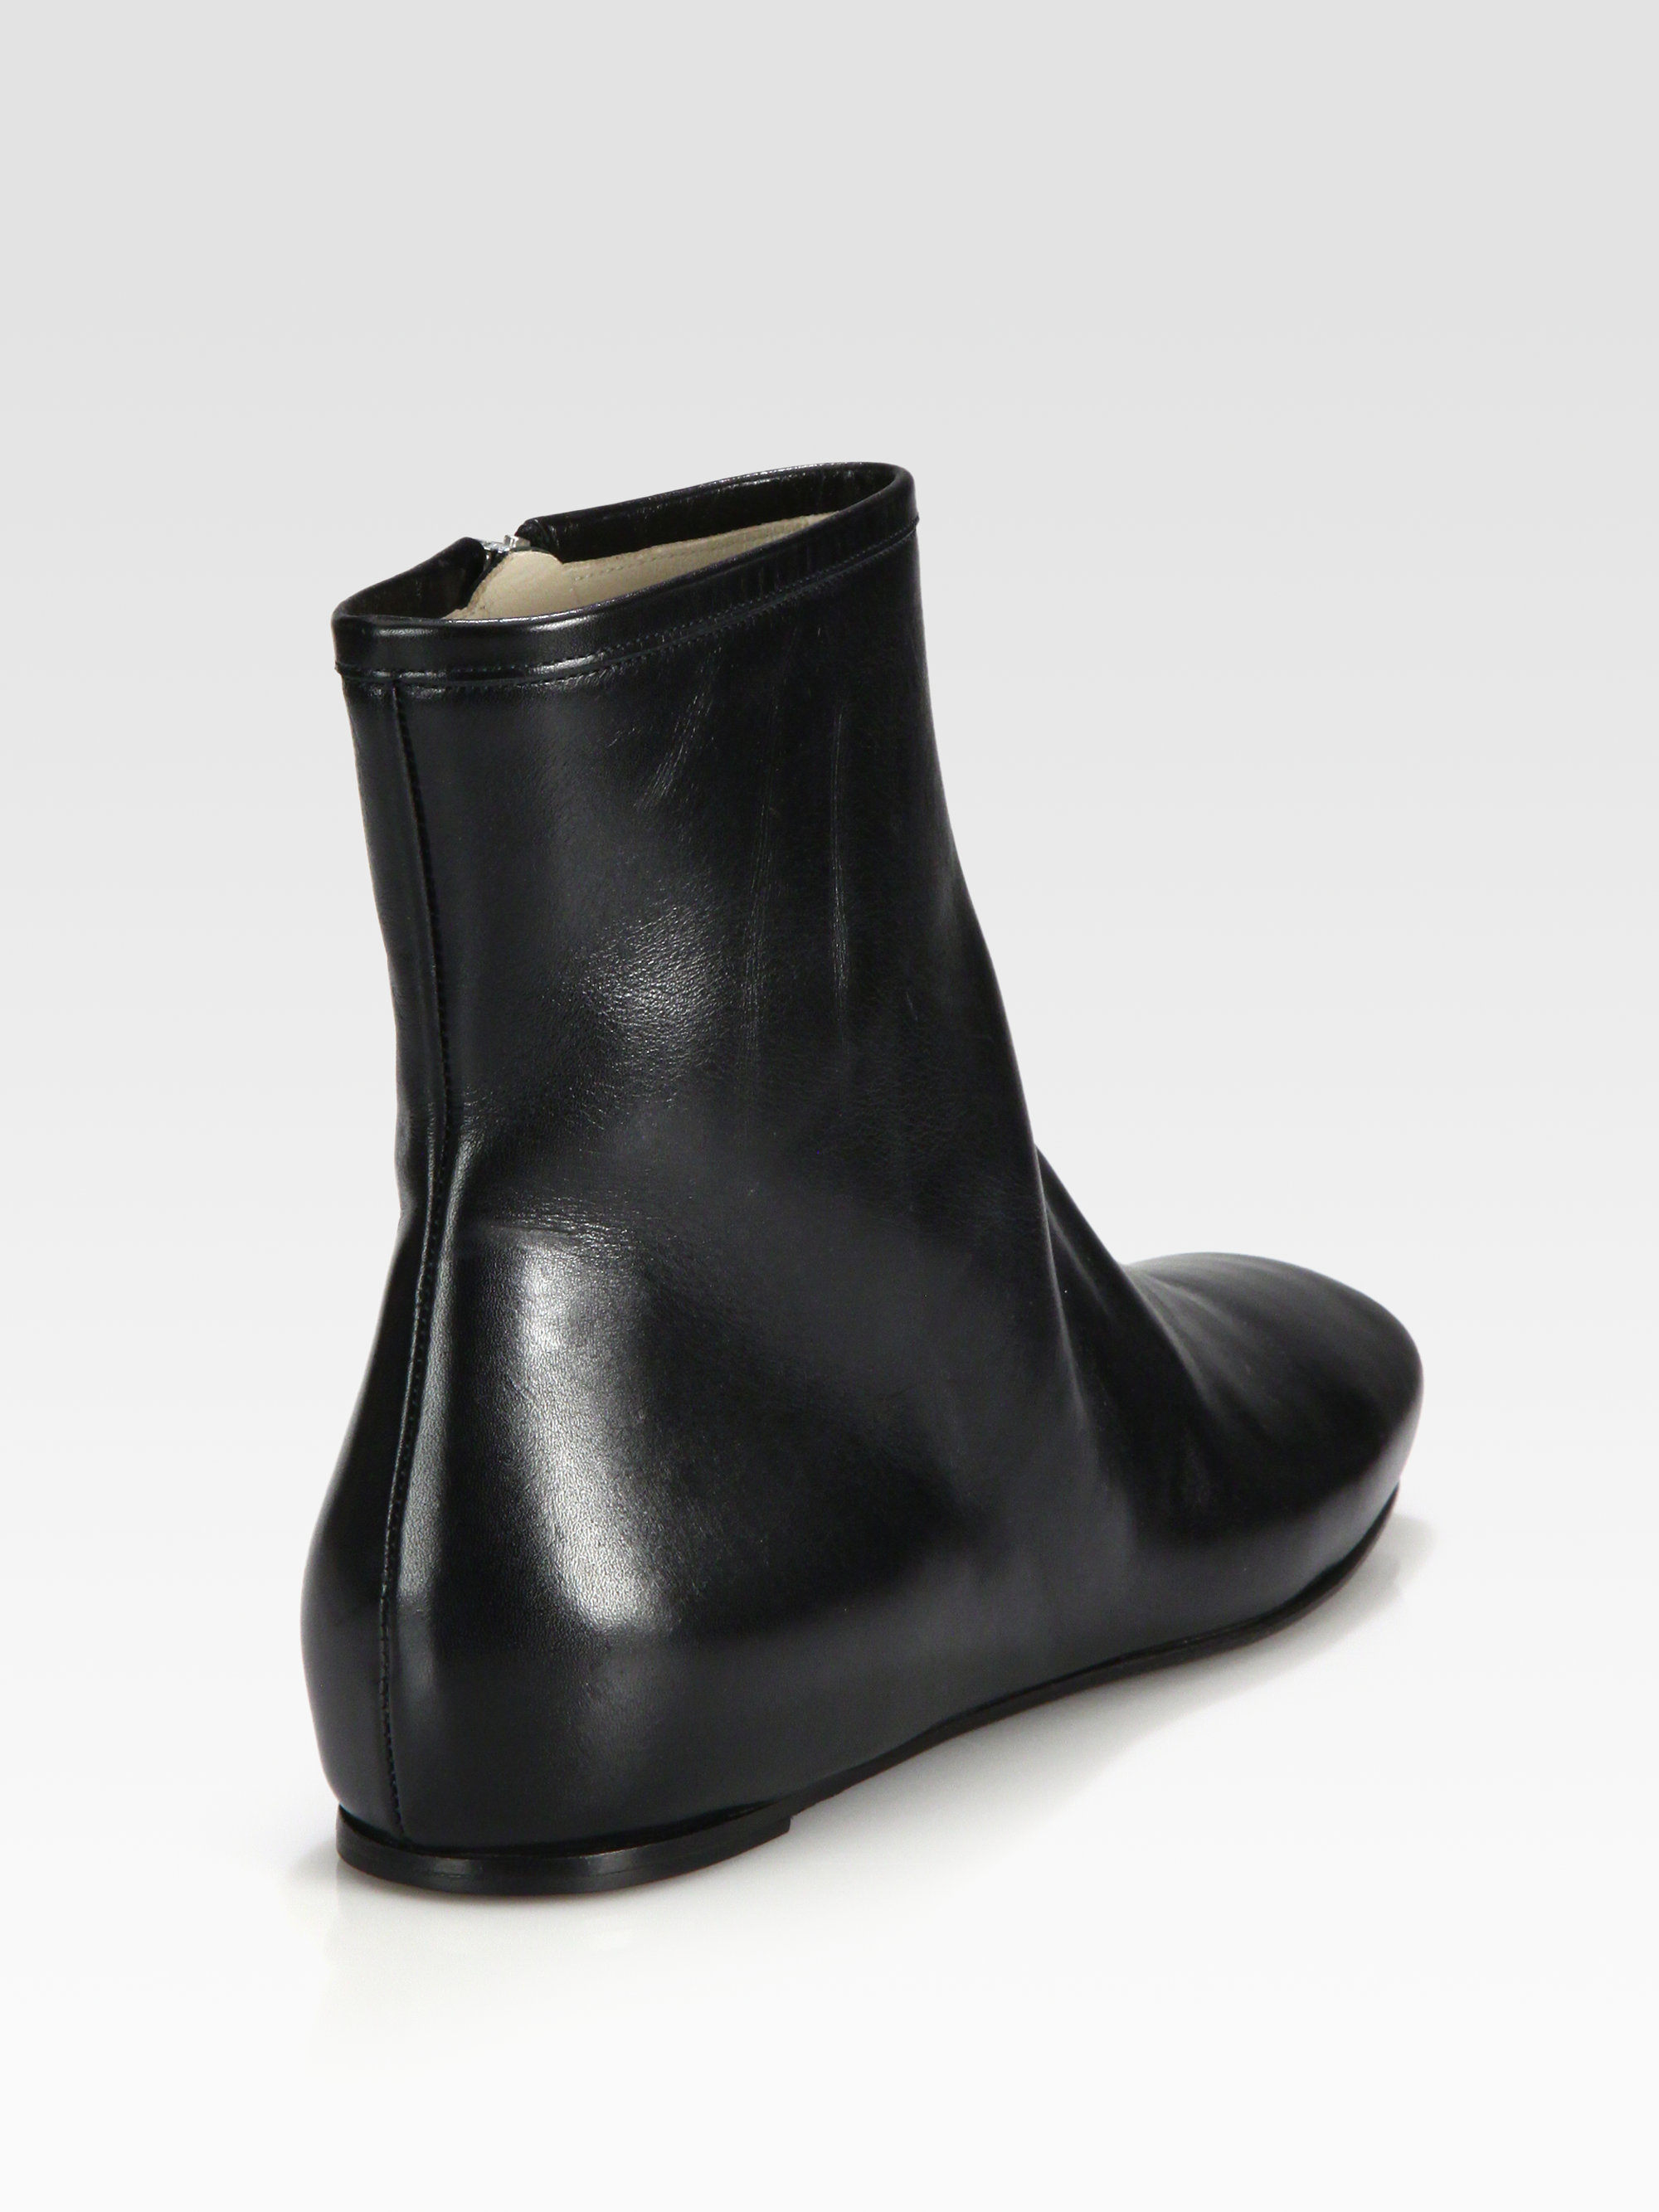 Jil sander navy Flat Leather Ankle Boots in Black | Lyst